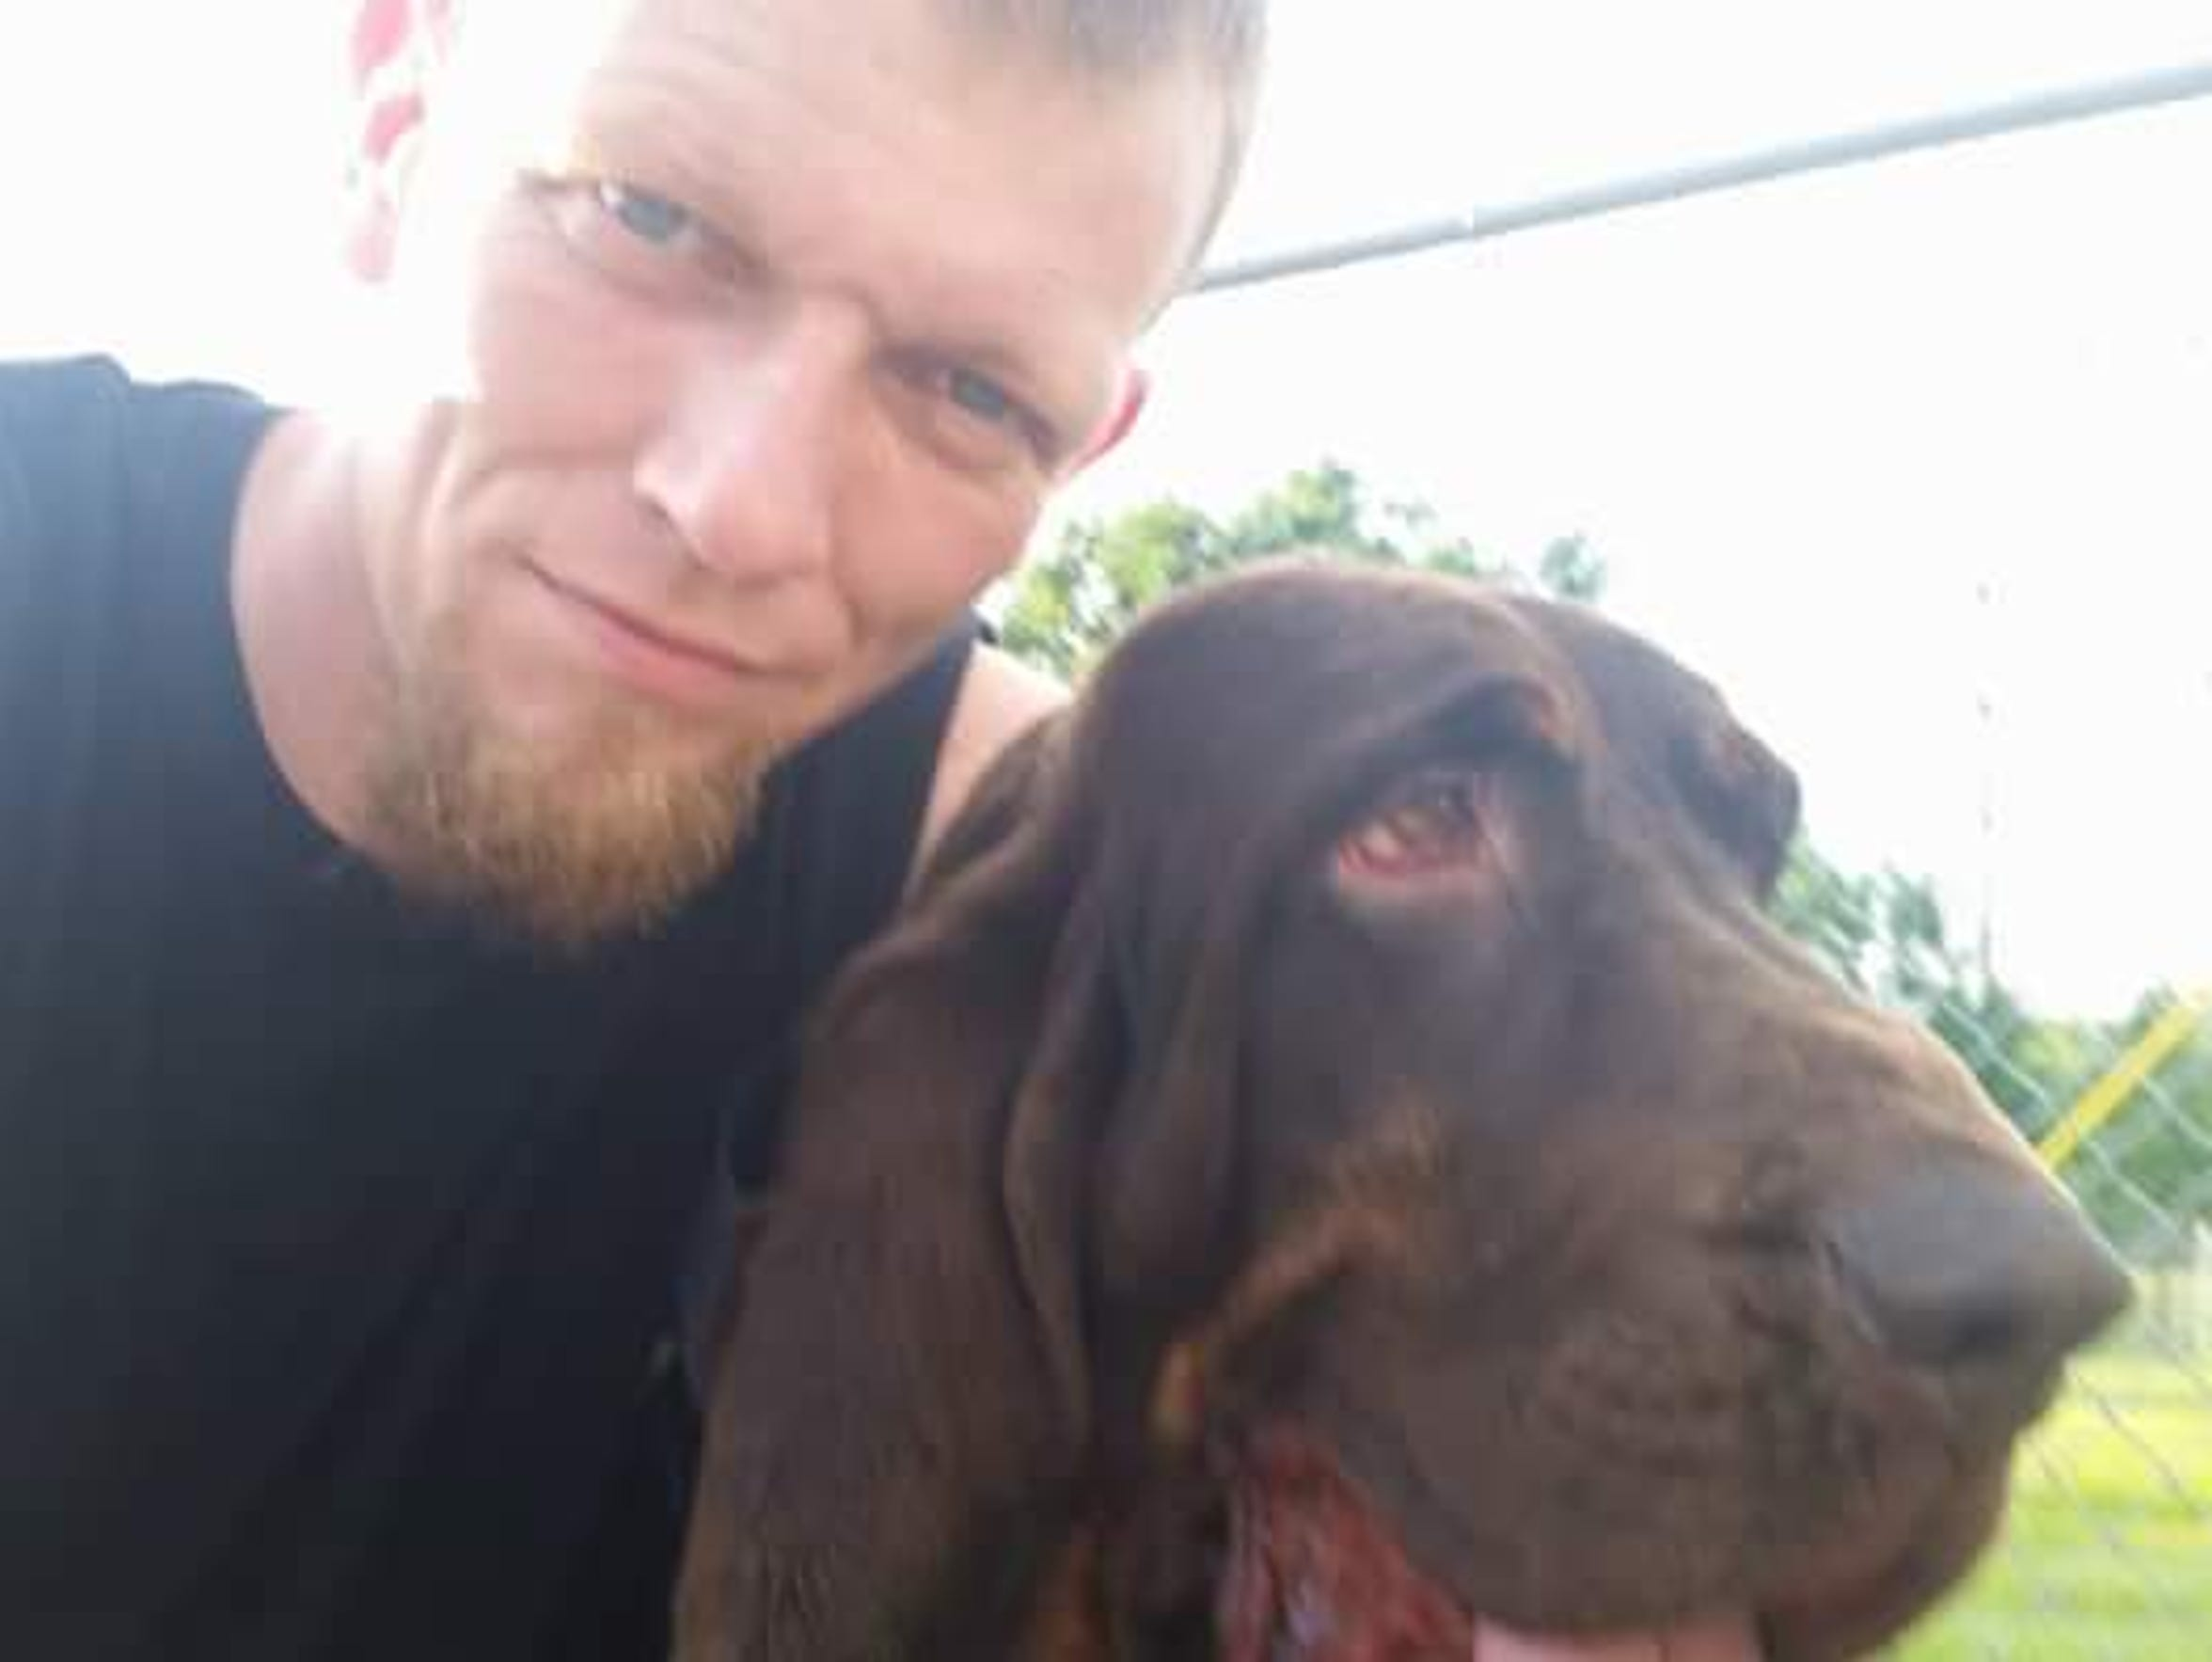 Gregory Everettes, Chambersburg, died of an overdose on May 29, 2017, at age 37.